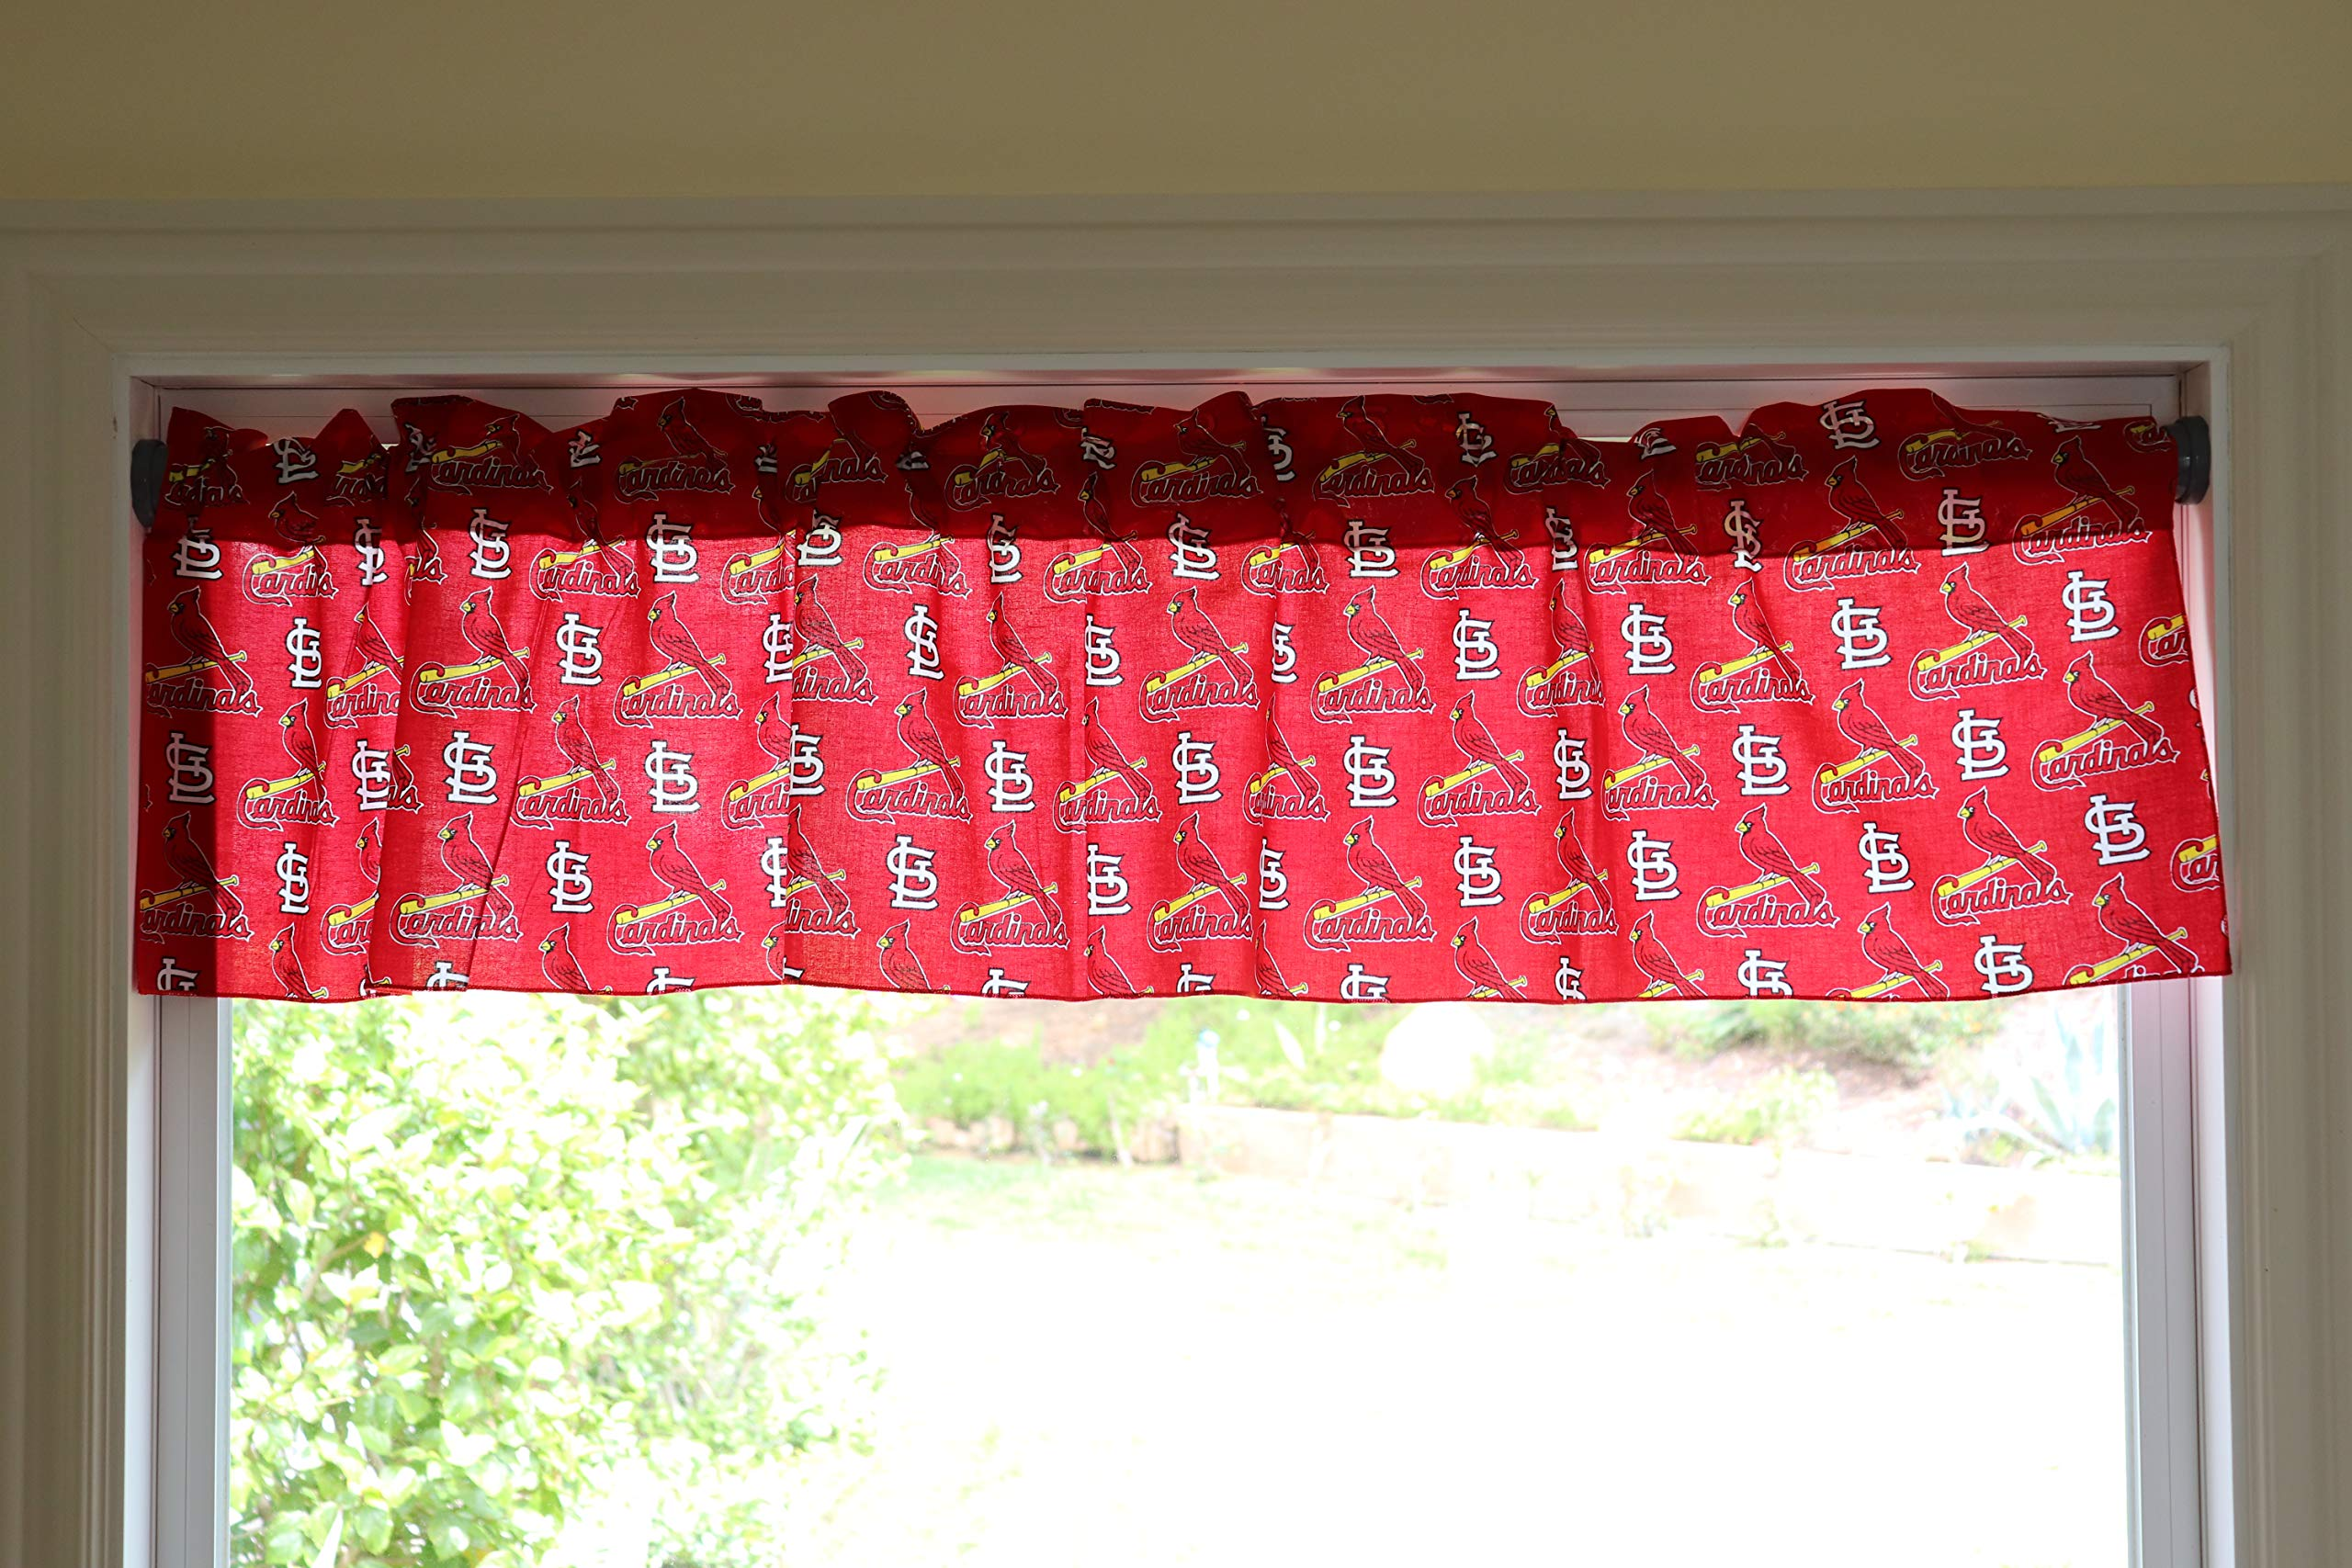 lovemyfabric Baseball Cotton Window Valance 100% Cotton Print MLB Sports Team St. Louis Cardinals Events Kitchen Dining Room Bedroom Window Decor (58'' Wide) (16'' Tall, Red) by lovemyfabric